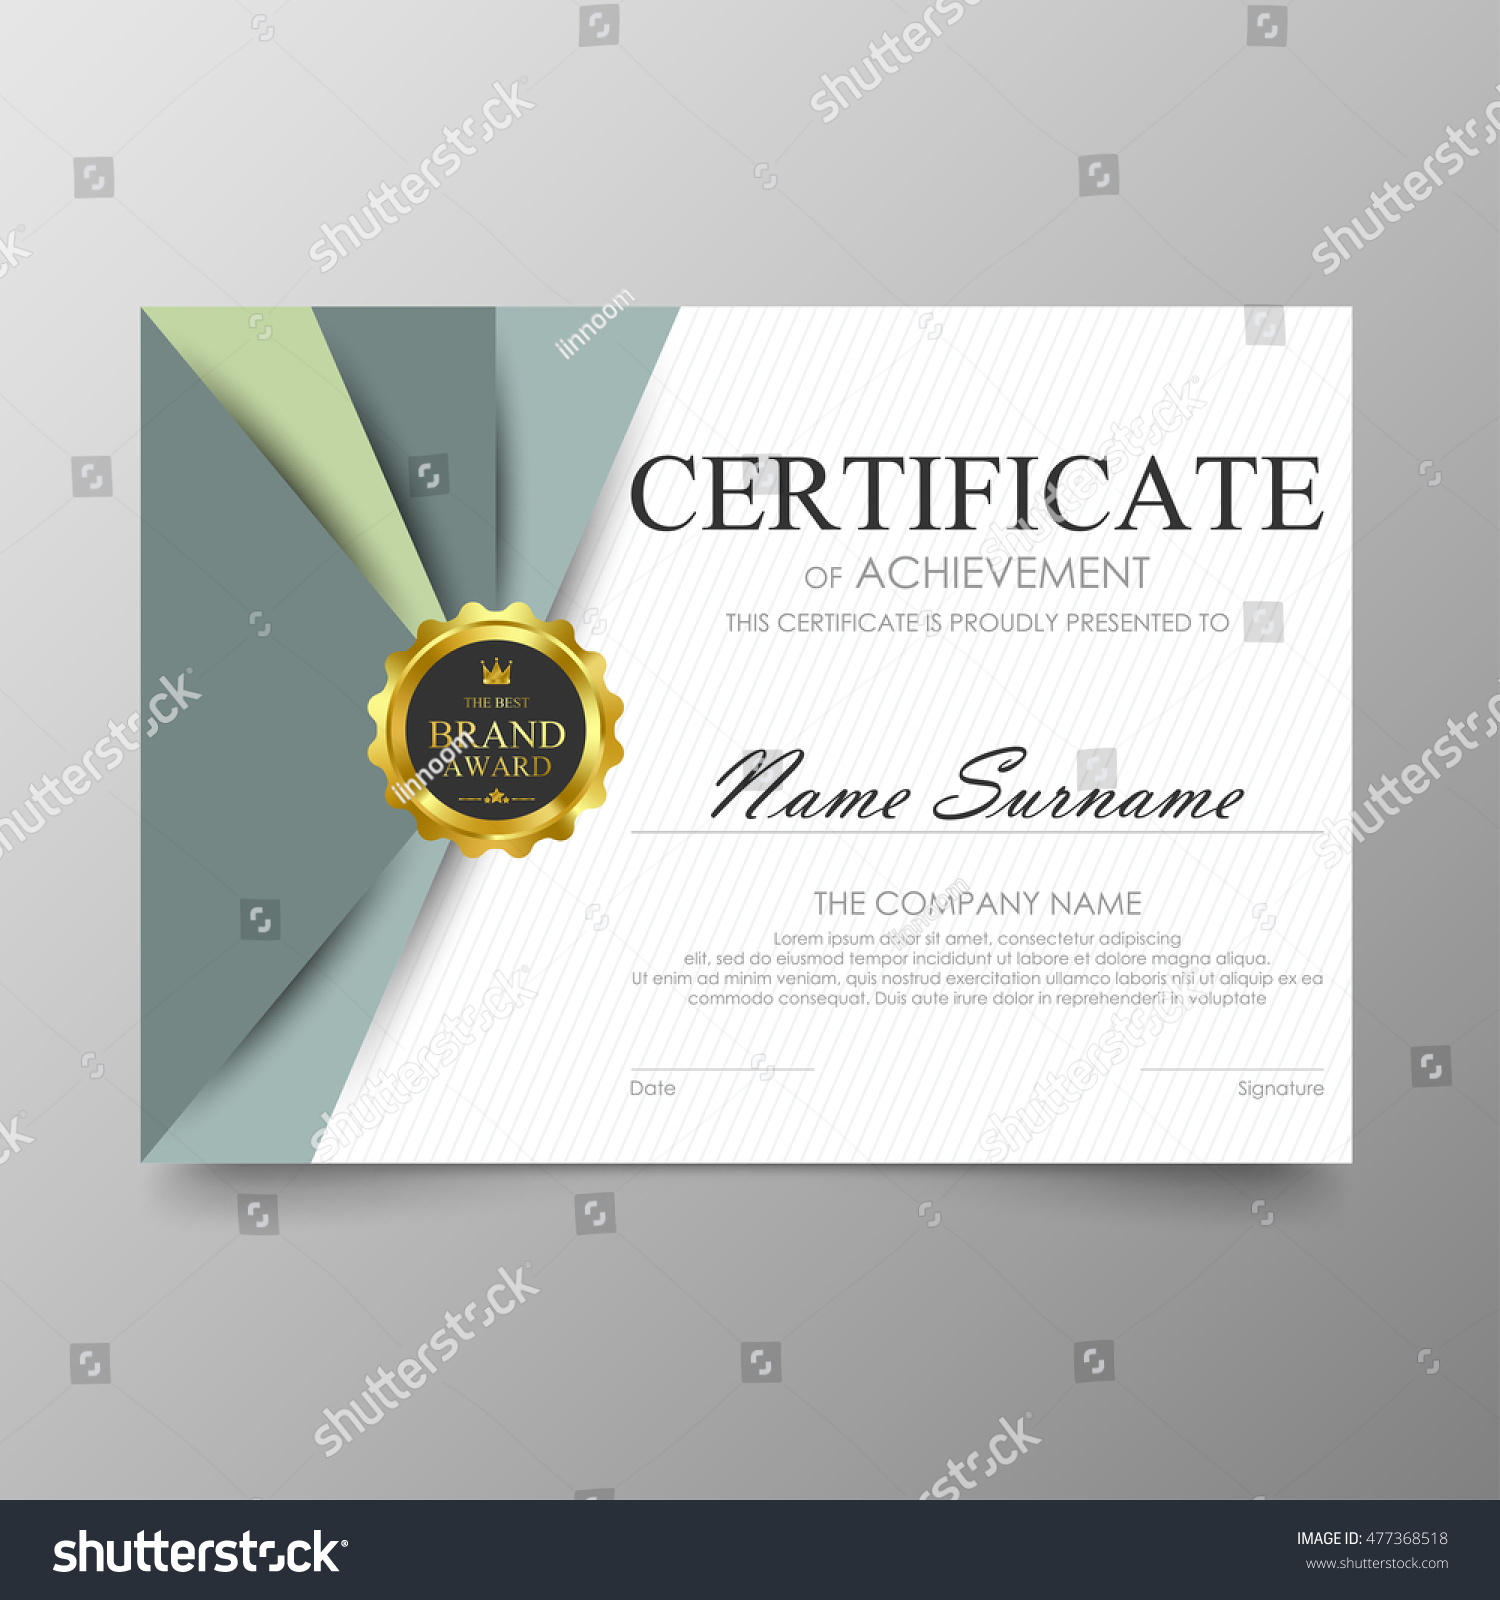 Free company share certificate template mandegarfo free company share certificate template yelopaper Gallery